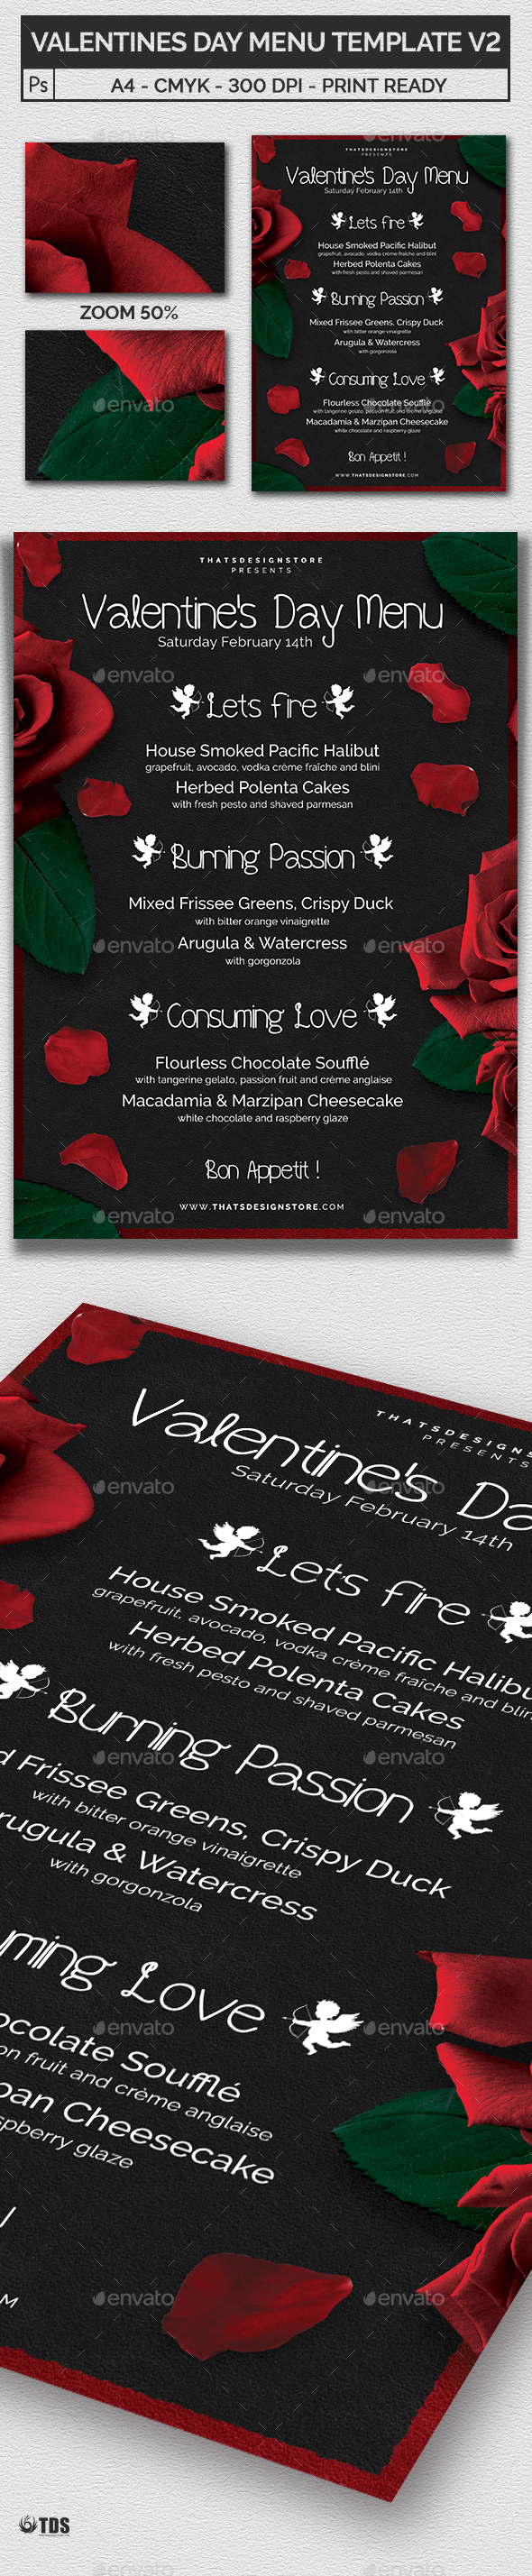 Valentines Day Menu Template V2 - Holidays Events